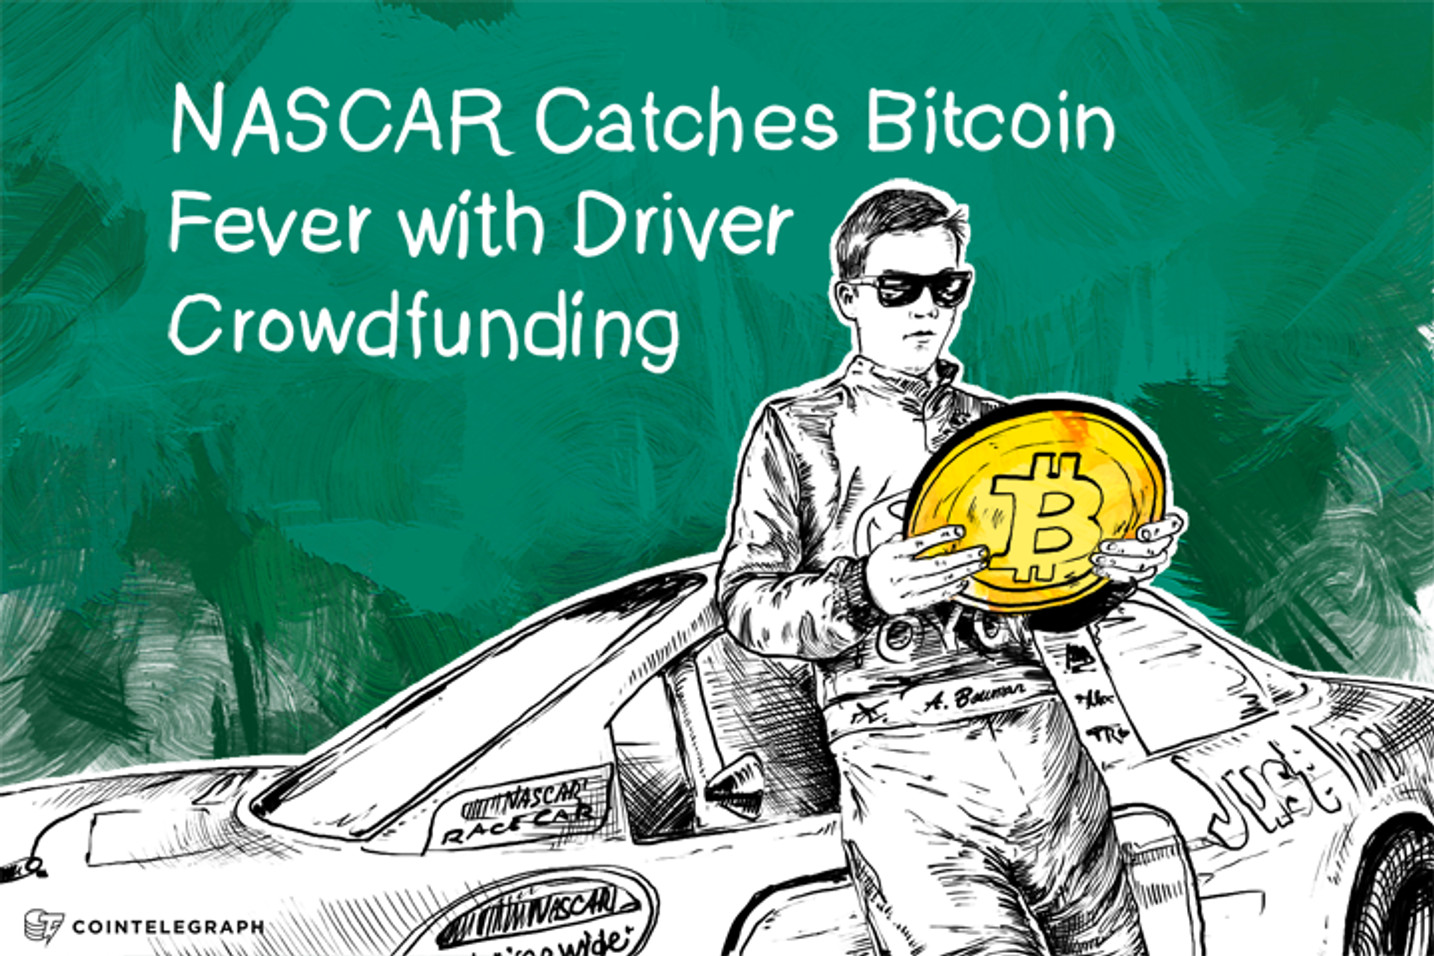 NASCAR Catches Bitcoin Fever with Driver Crowdfunding